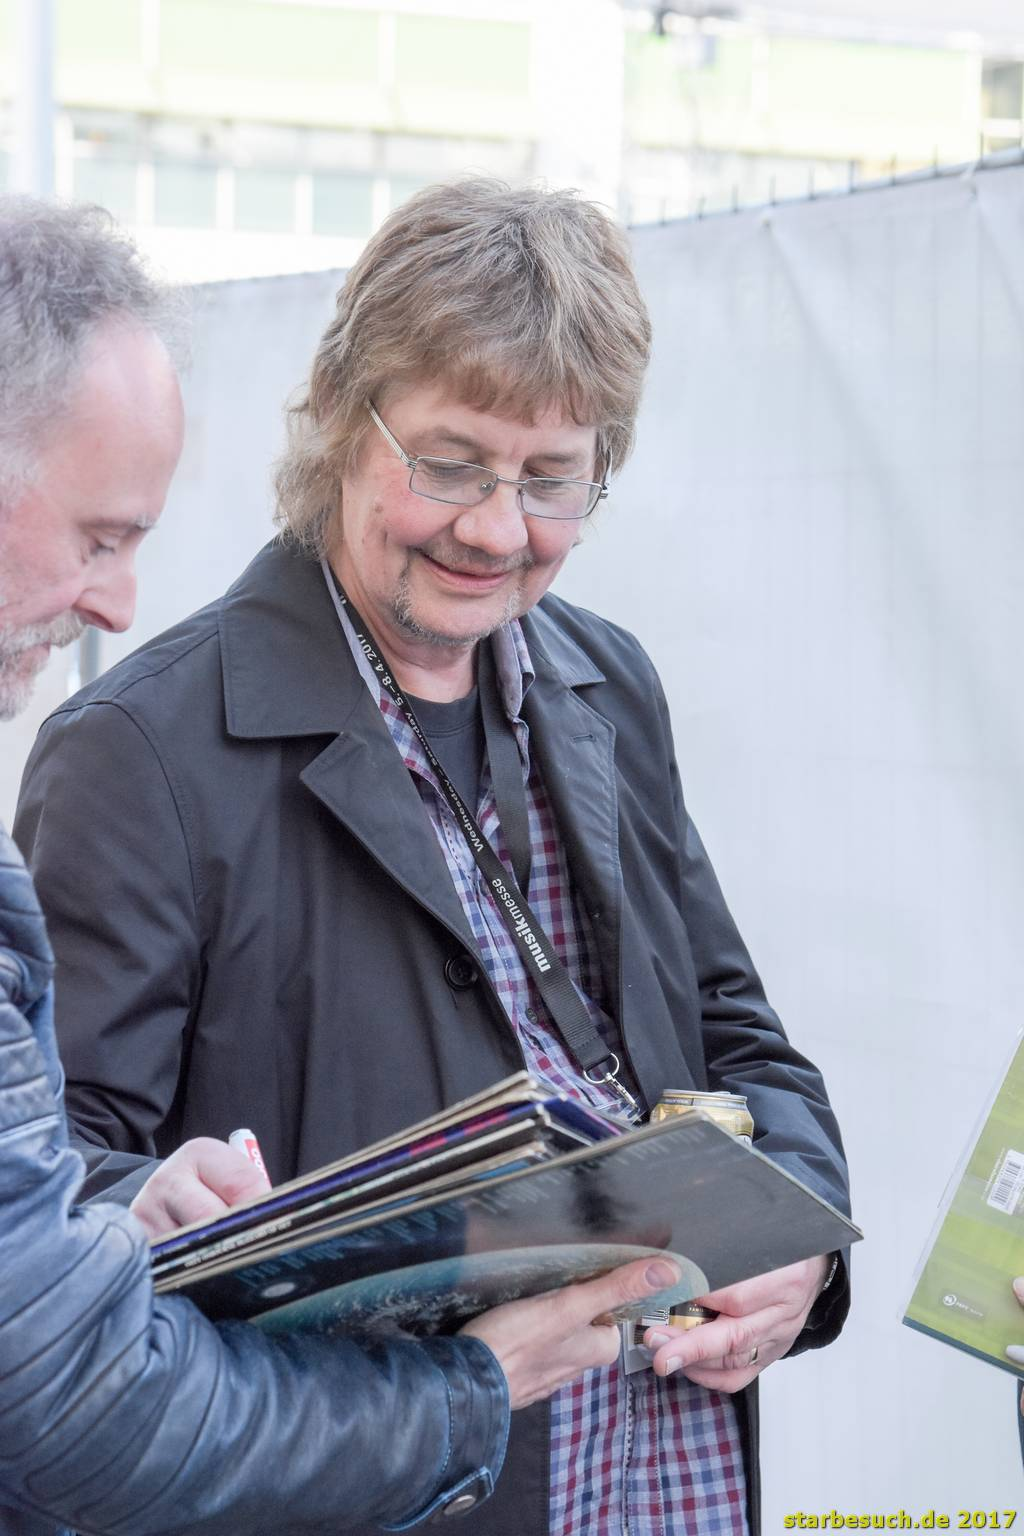 Frankfurt, Germany. 6th April 2017. Don Airey, keyboarder of Deep Purple, signing autographs after his concert at Musikmesse in Frankfurt, Germany